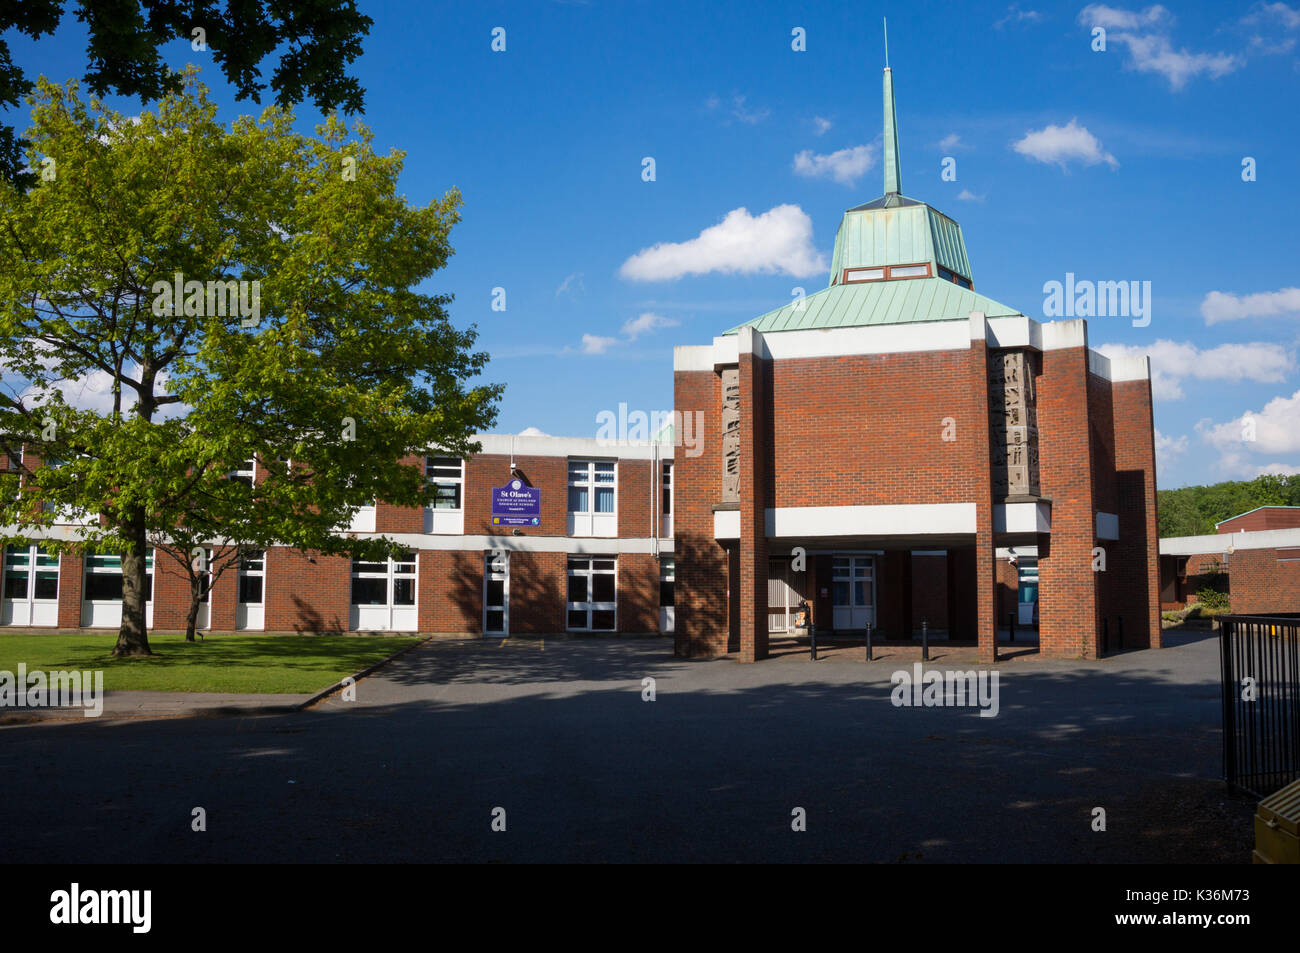 St Olave's Church of England Grammar School, involved in A-level scandal whereby some pupils were prevented from continuing their studies - Stock Image